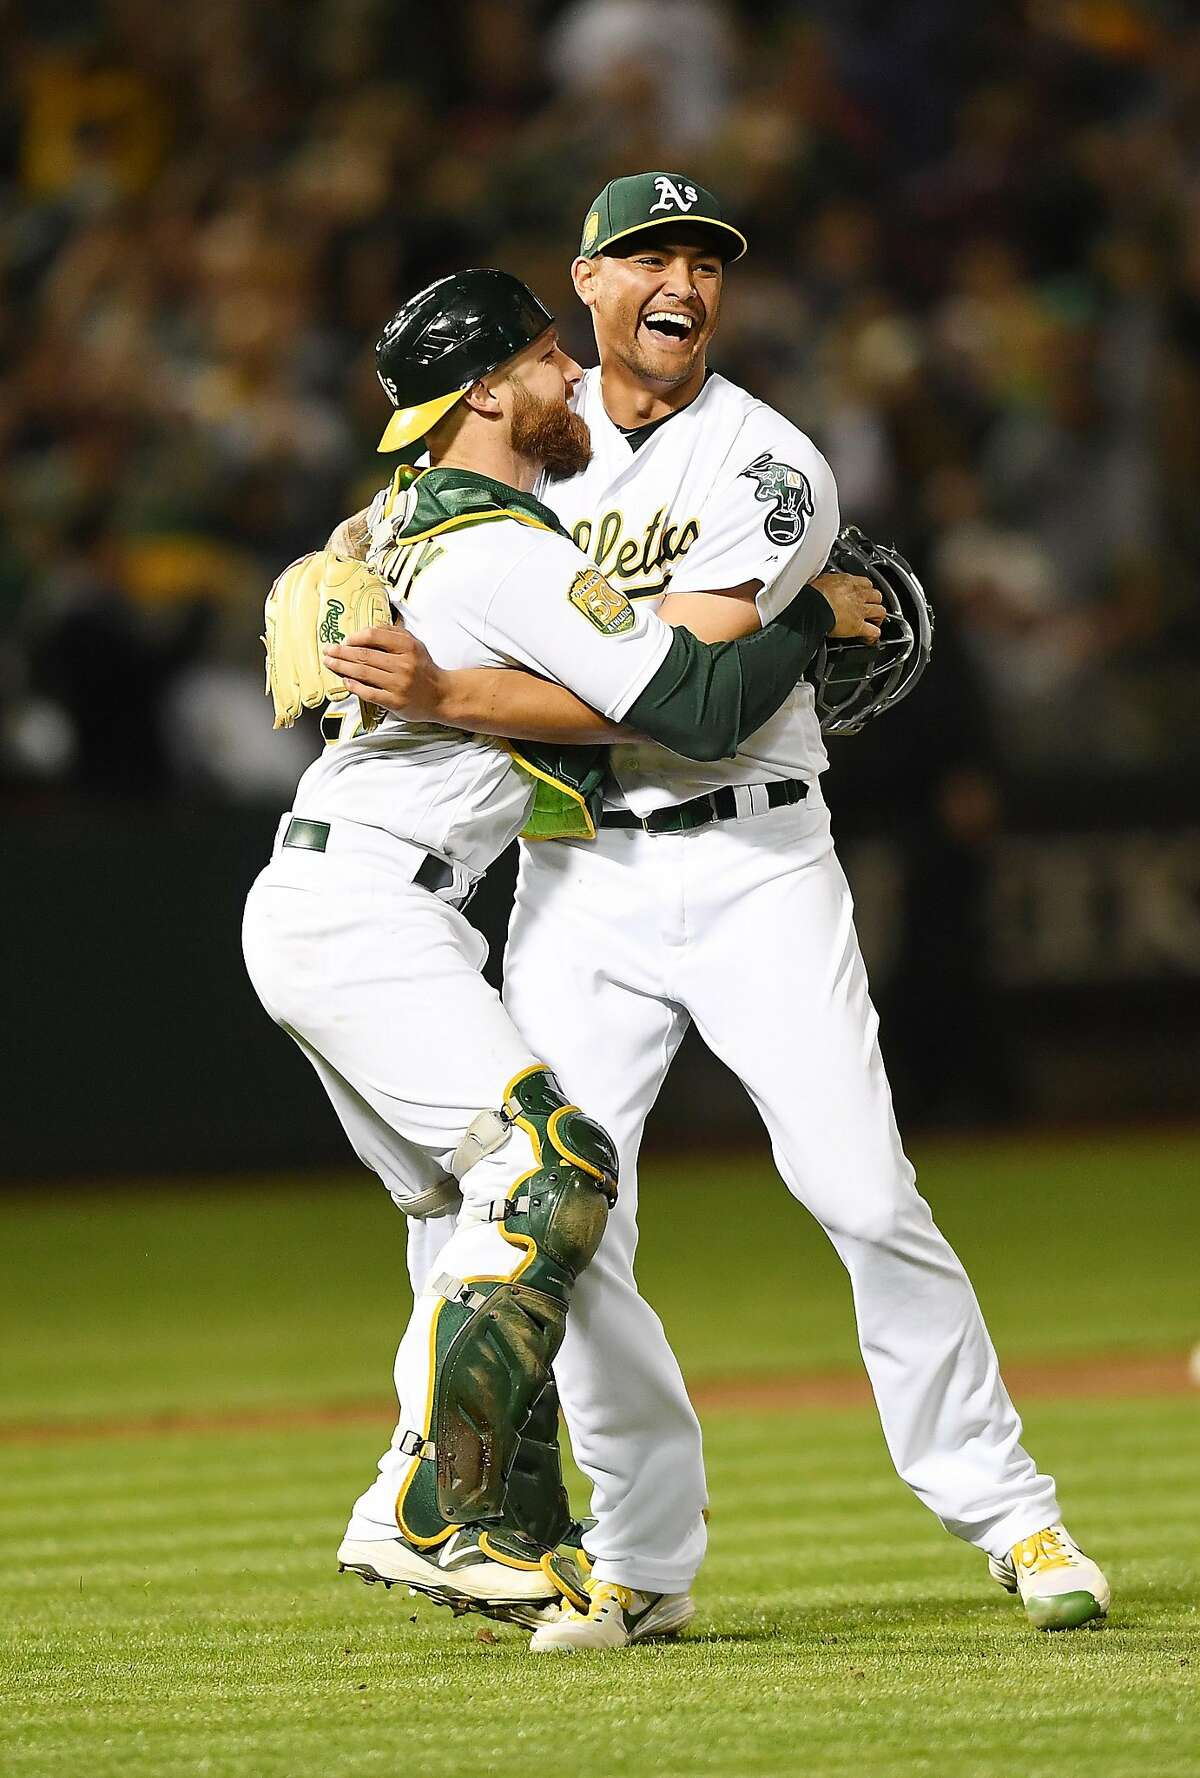 OAKLAND, CA - APRIL 21: Sean Manaea #55 and Jonathan Lucroy #21 of the Oakland Athletics celebrates after Manaea pitched a no-hitter against the Boston Red Sox at the Oakland Alameda Coliseum on April 21, 2018 in Oakland, California. The Athletics won th